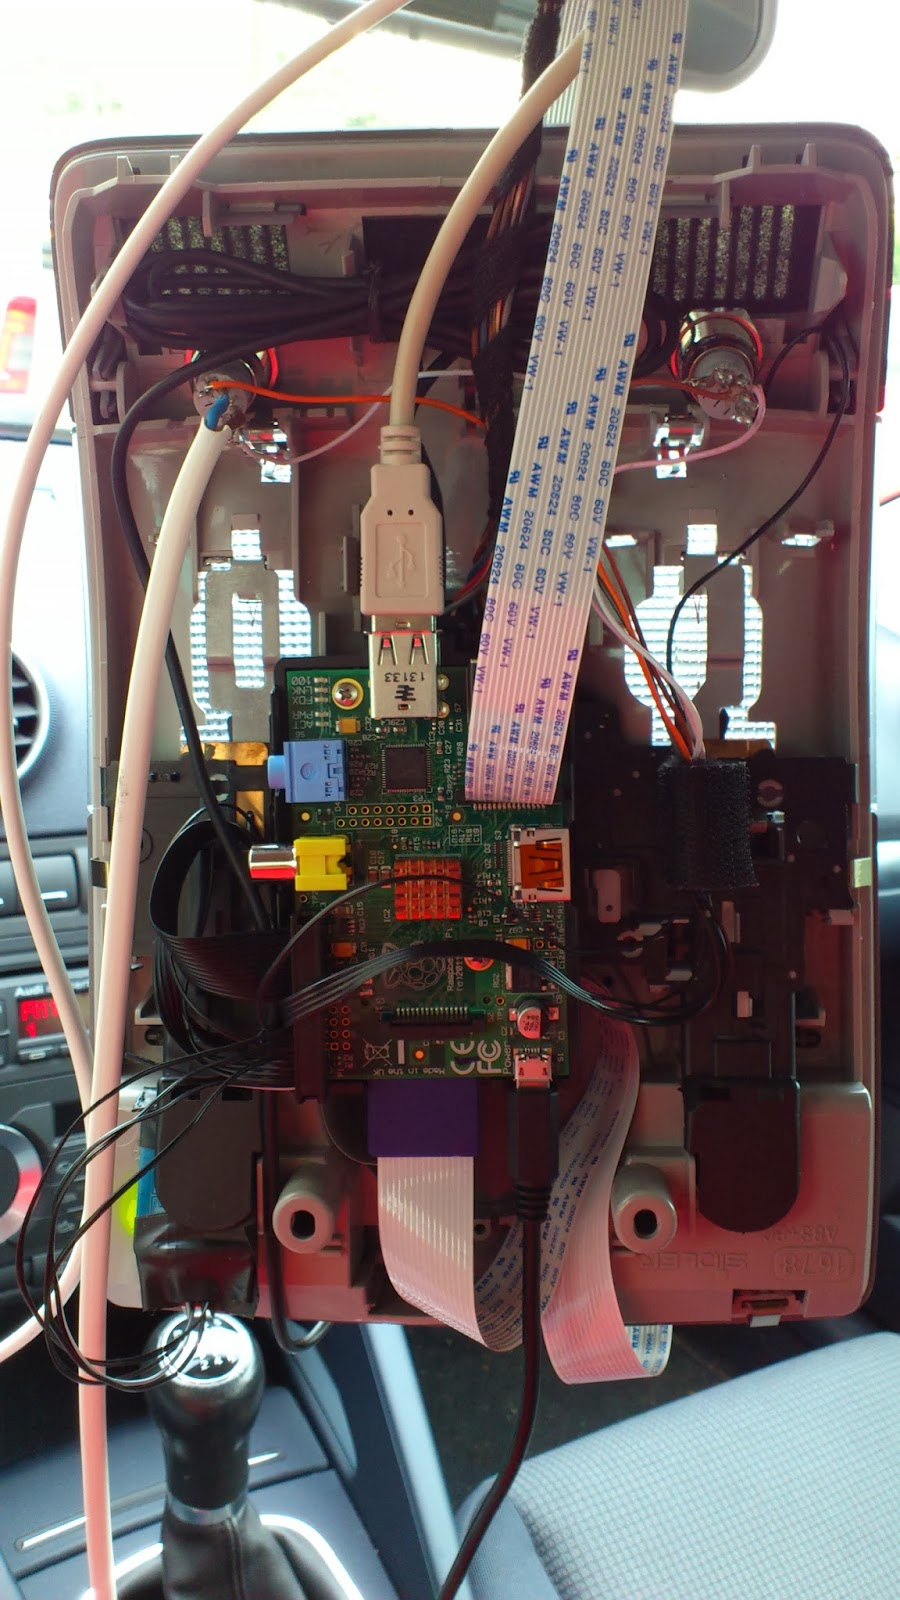 A Raspberry Pi dashcam with two cameras and a GPS: The built-in Pi